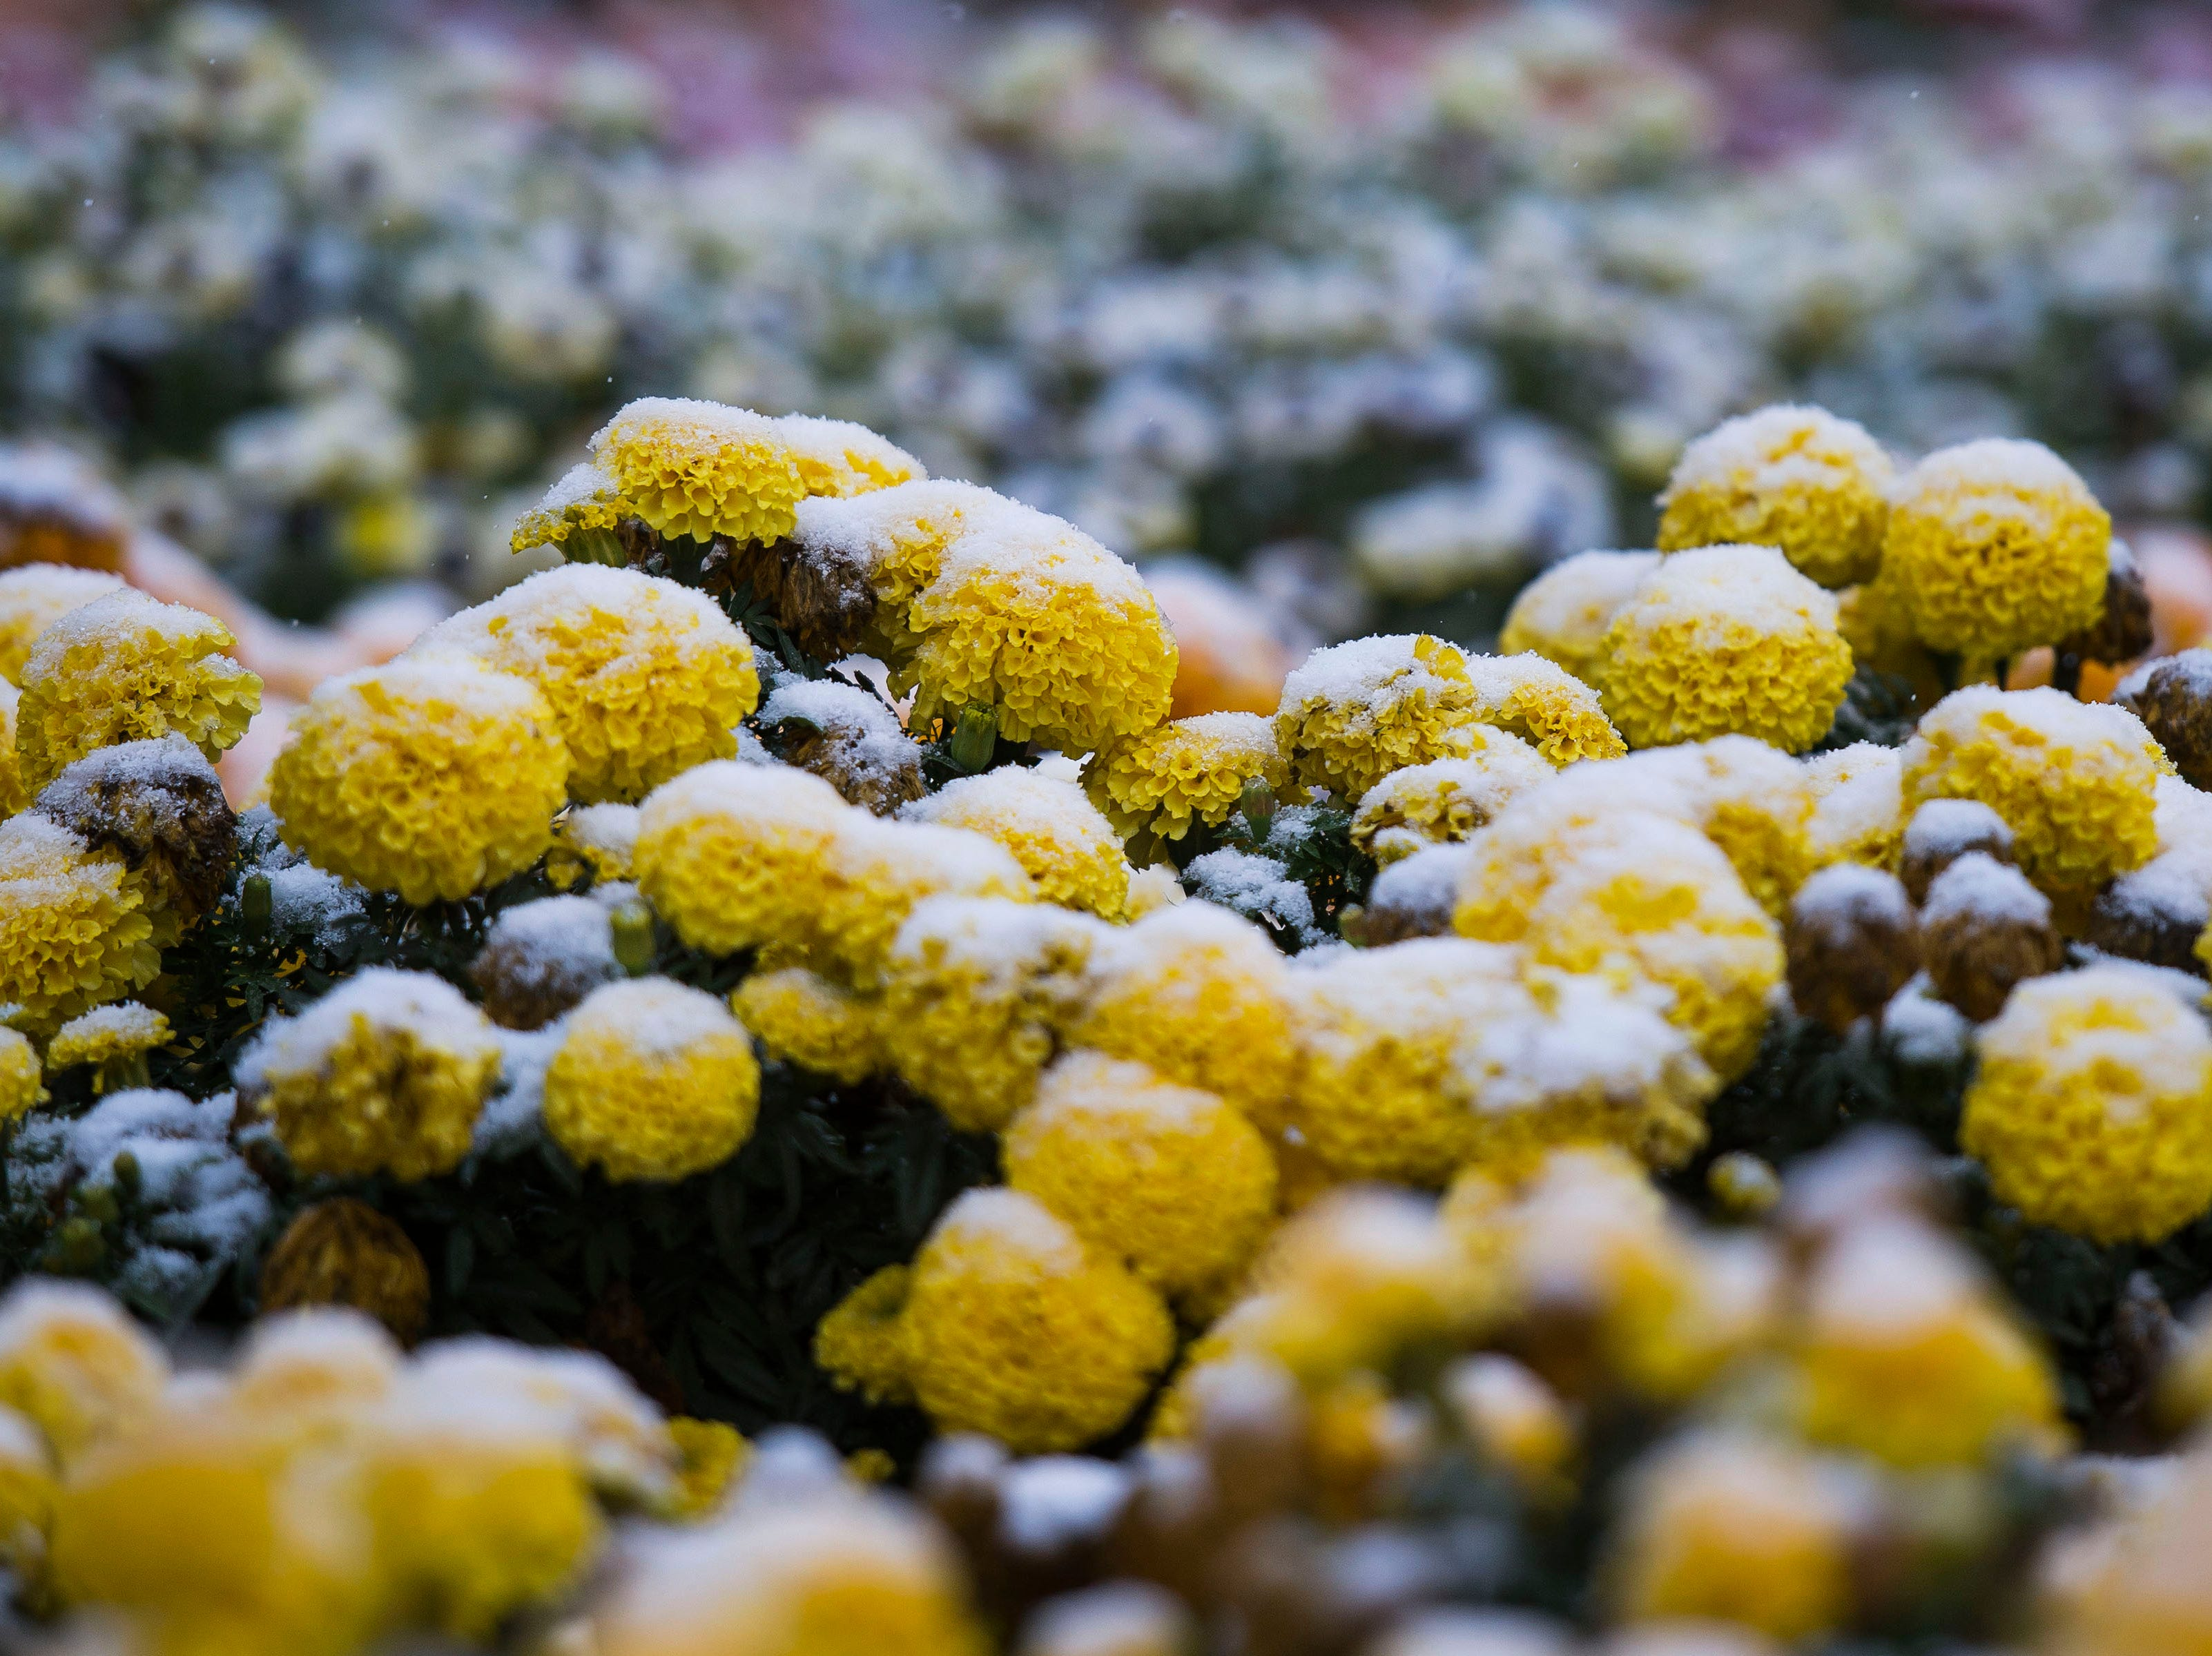 Flowers are covered by snow on Wednesday, Oct. 10, 2018, at the Annual Flower Trial Garden on the Colorado State University campus in Fort Collins, Colo.